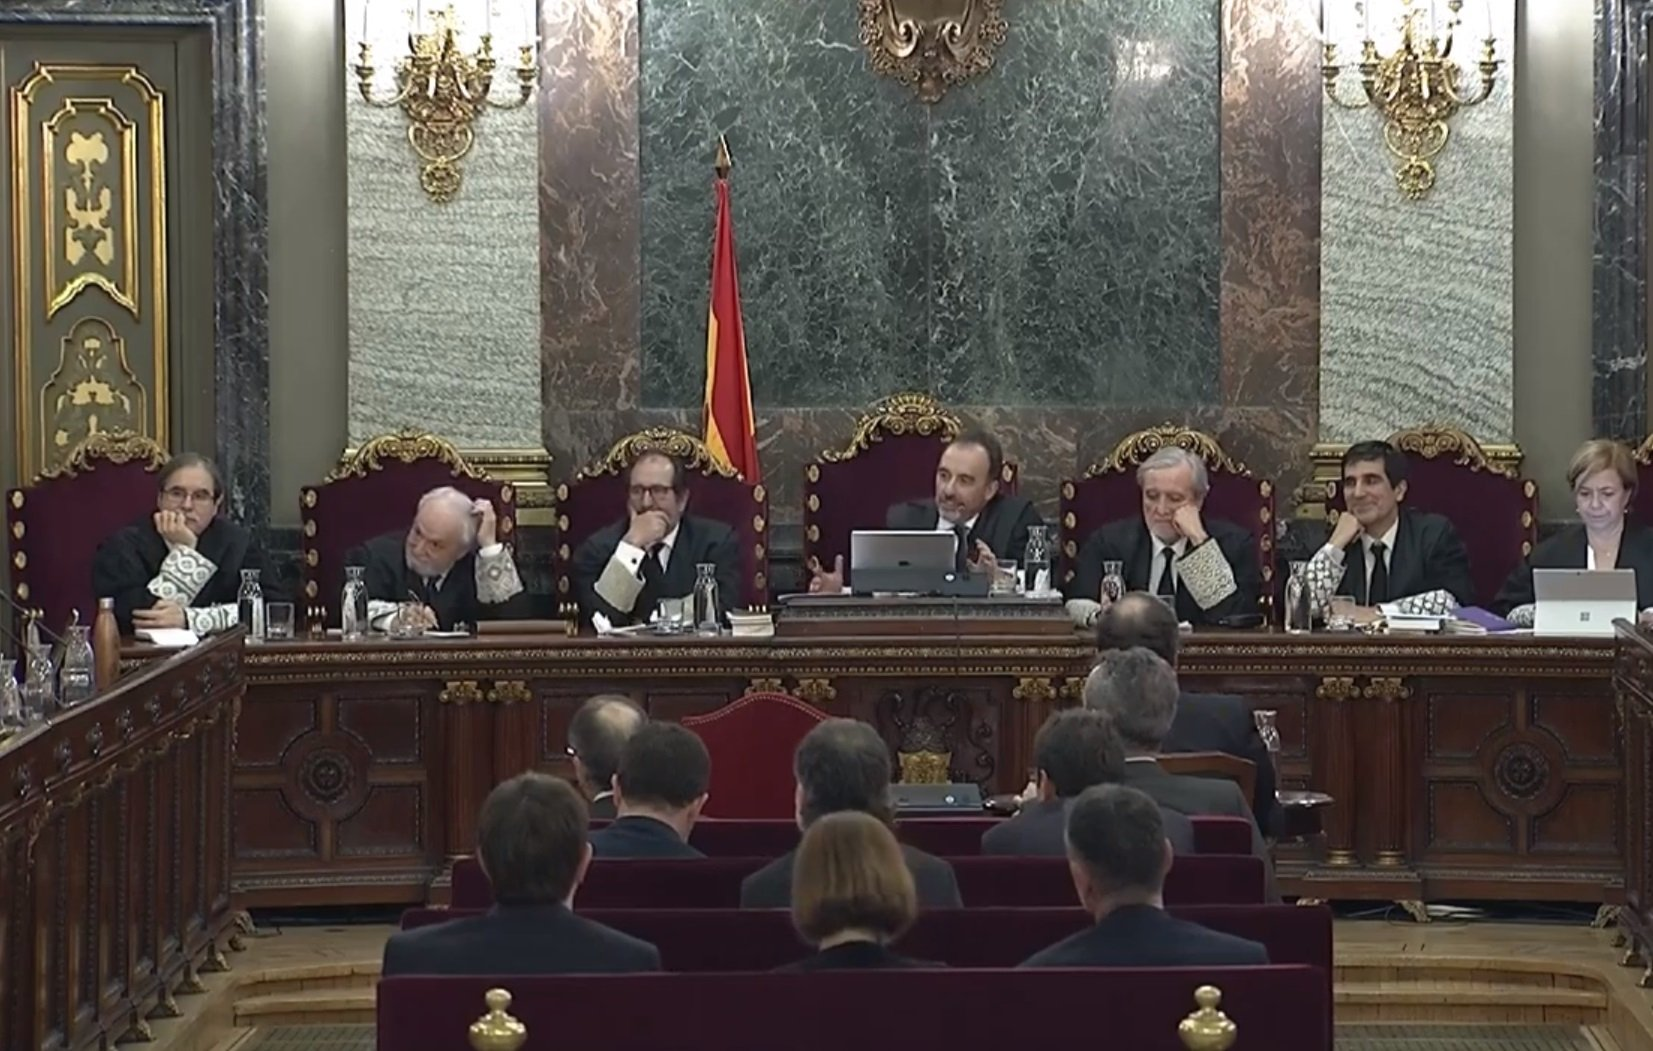 judici proces tribunal supremo marchena